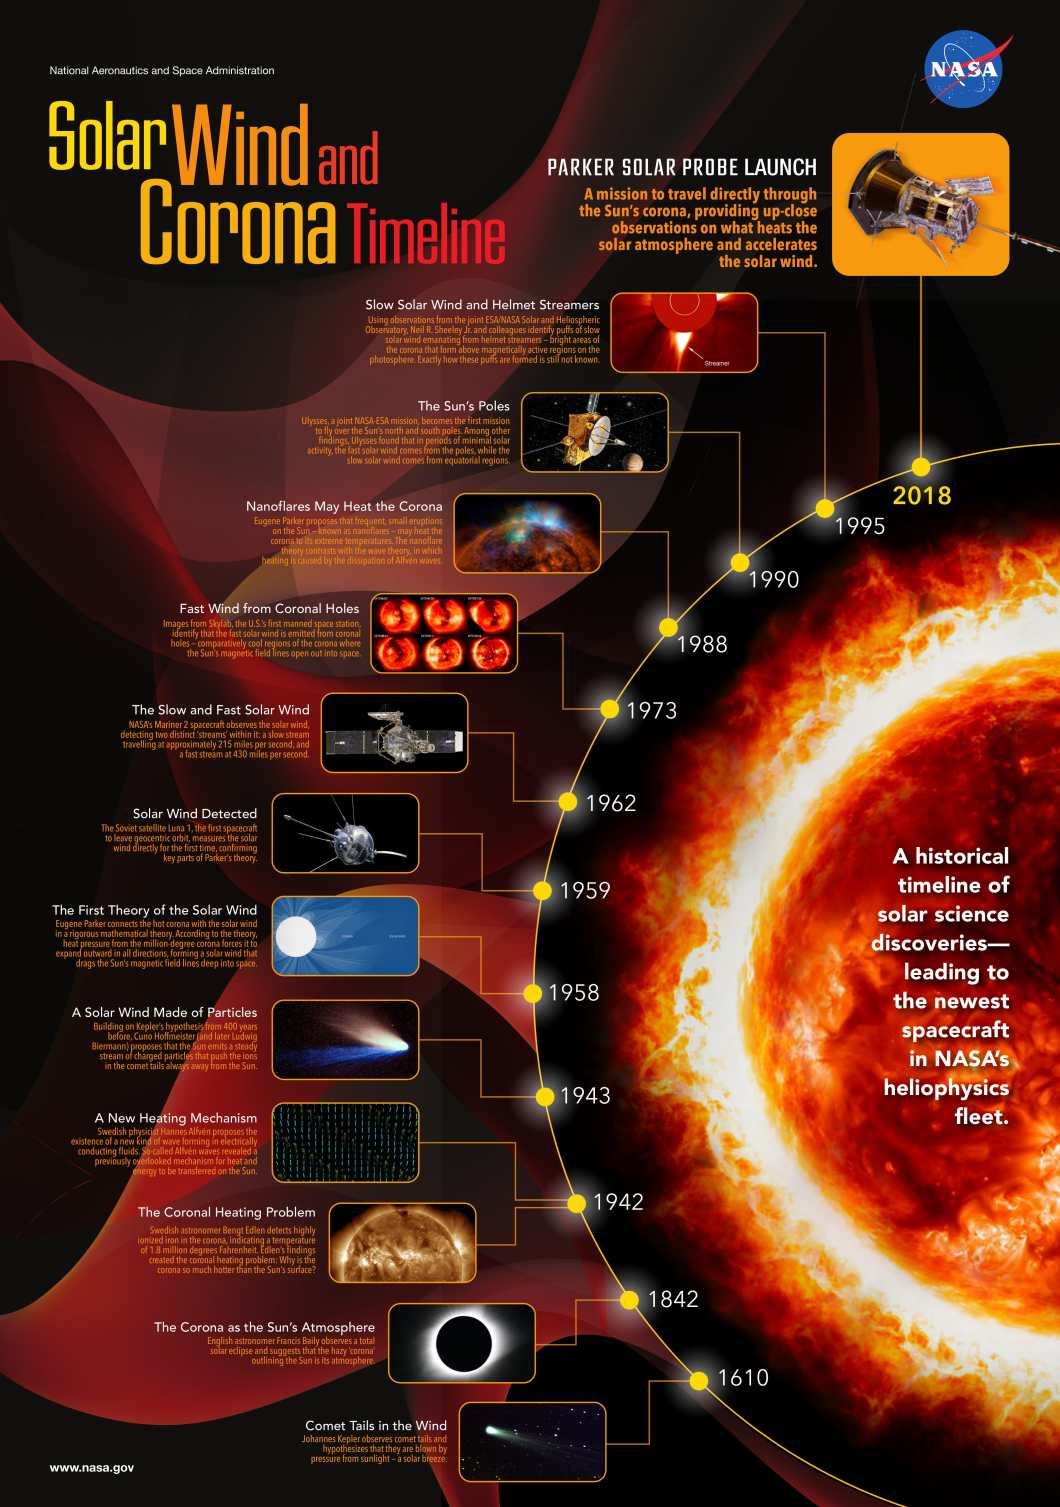 Man's Journey to Understand the Sun: A Timeline - Infographic